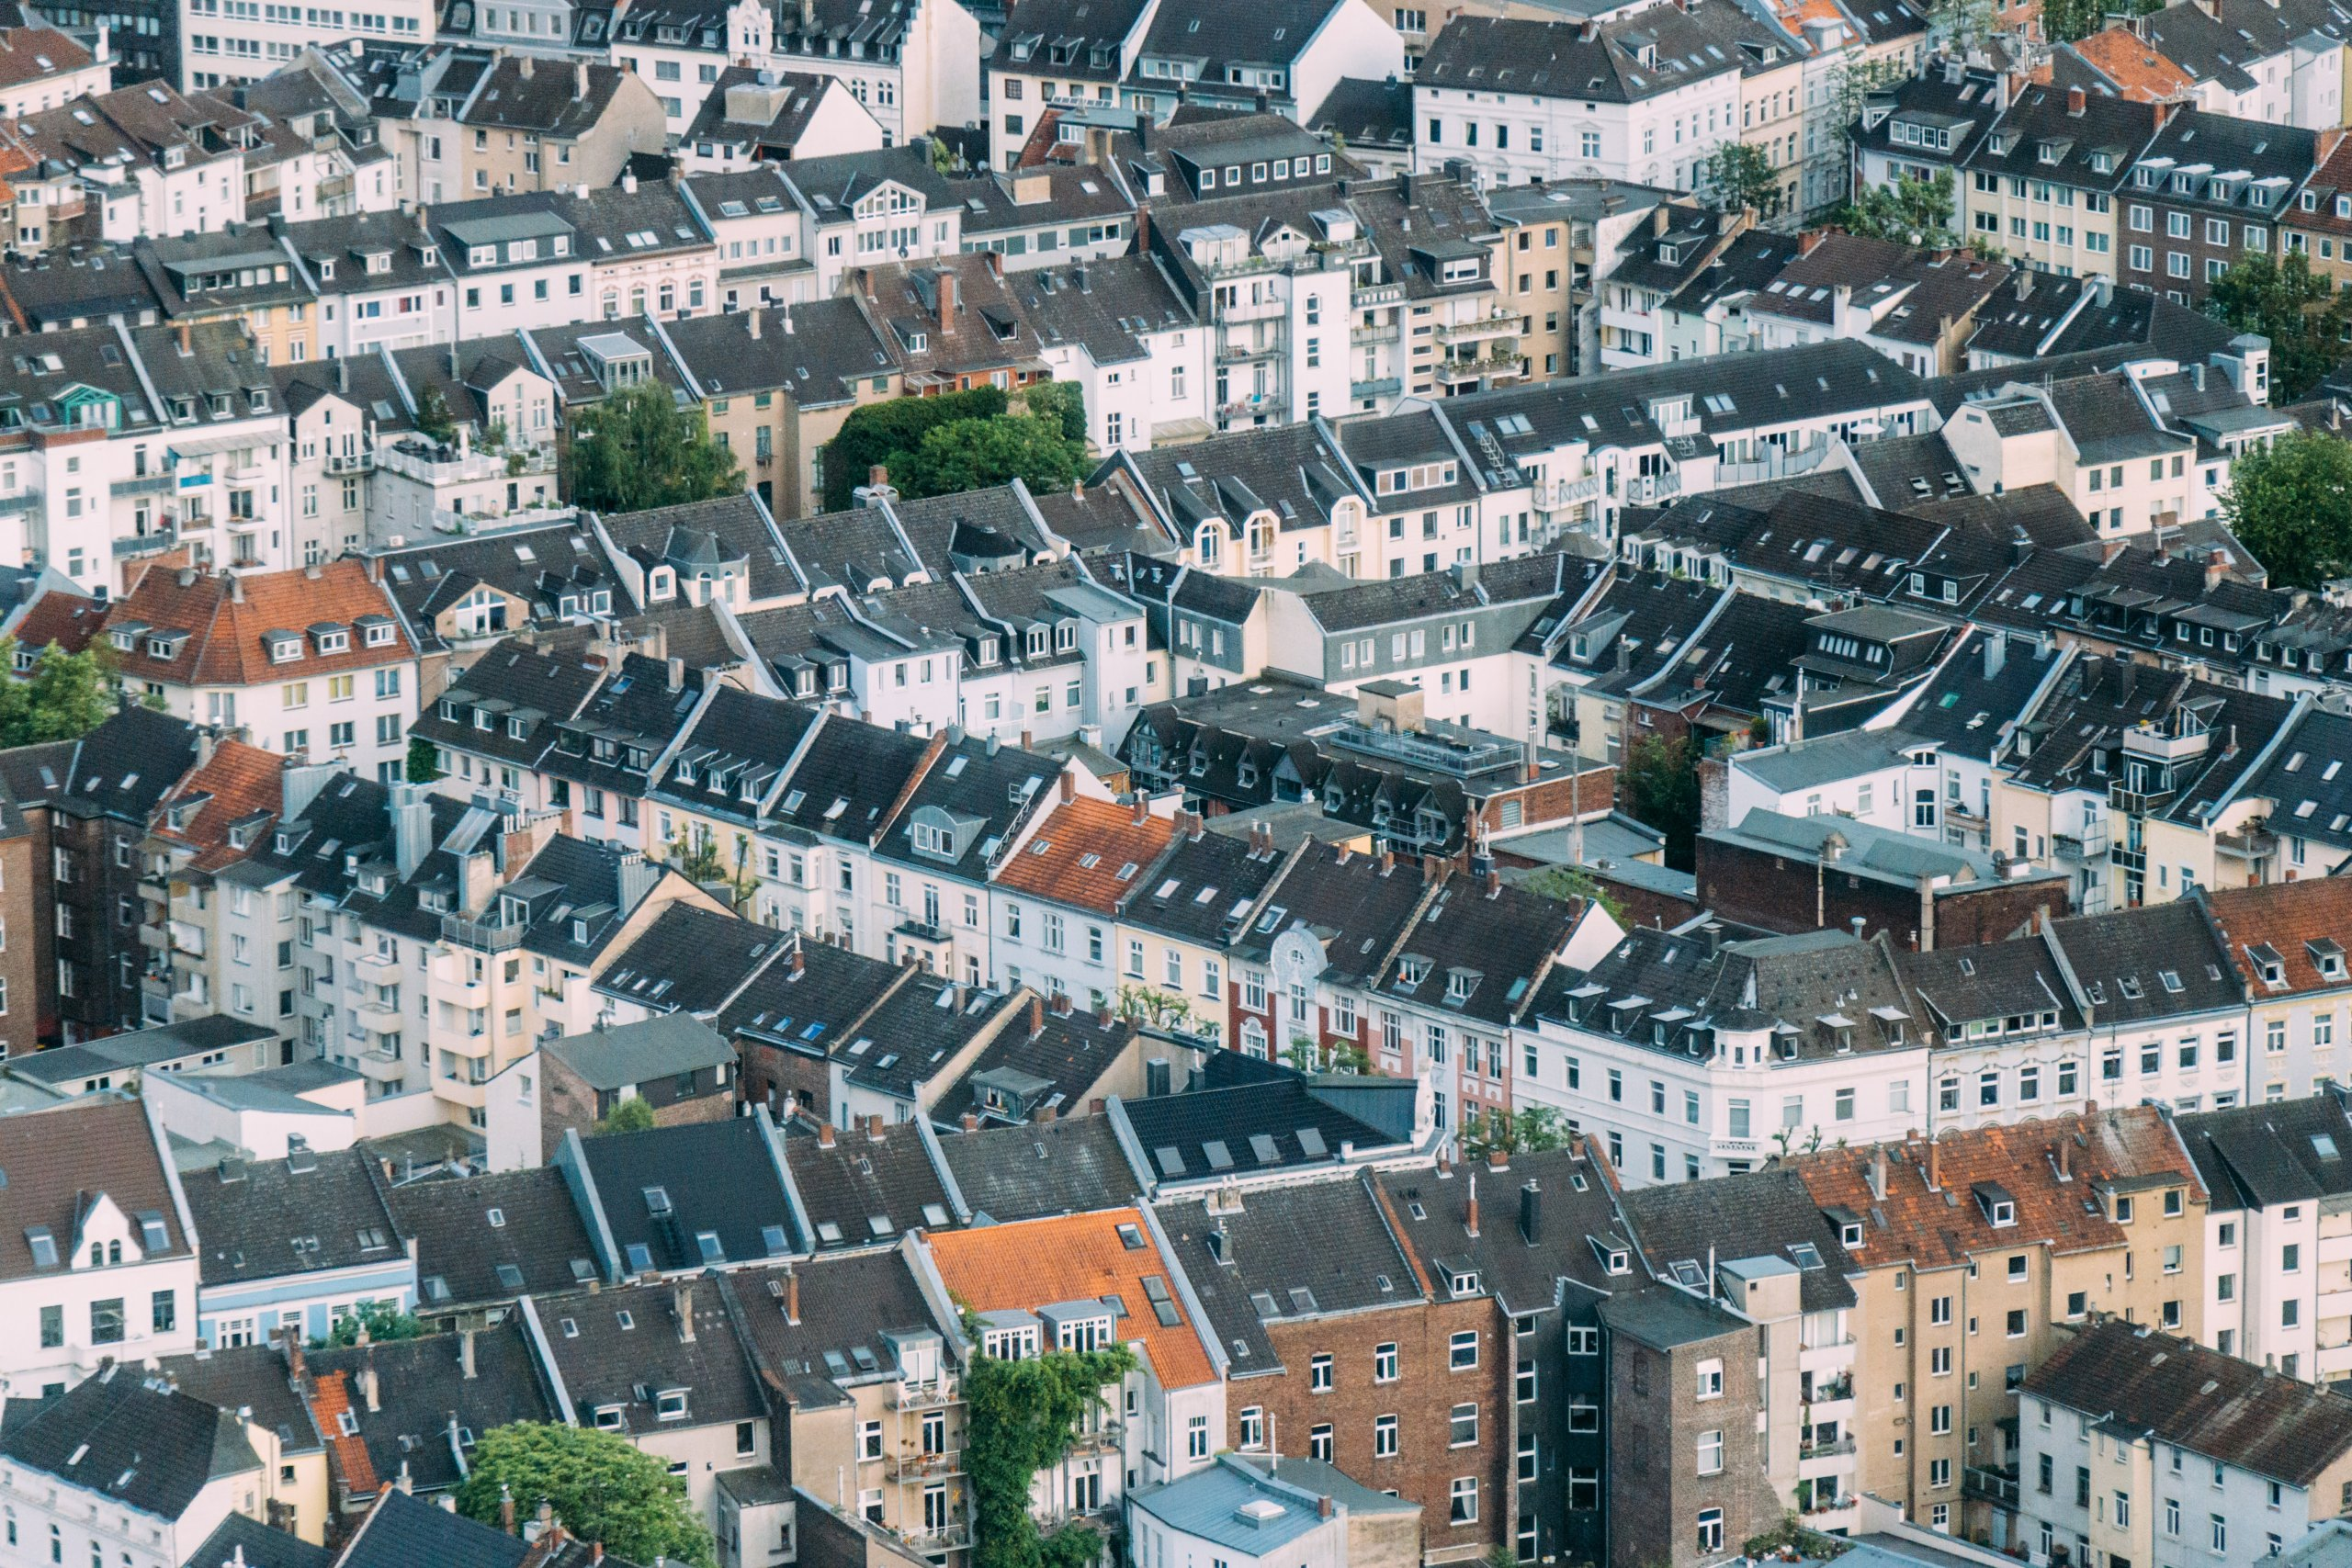 An image of urban houses